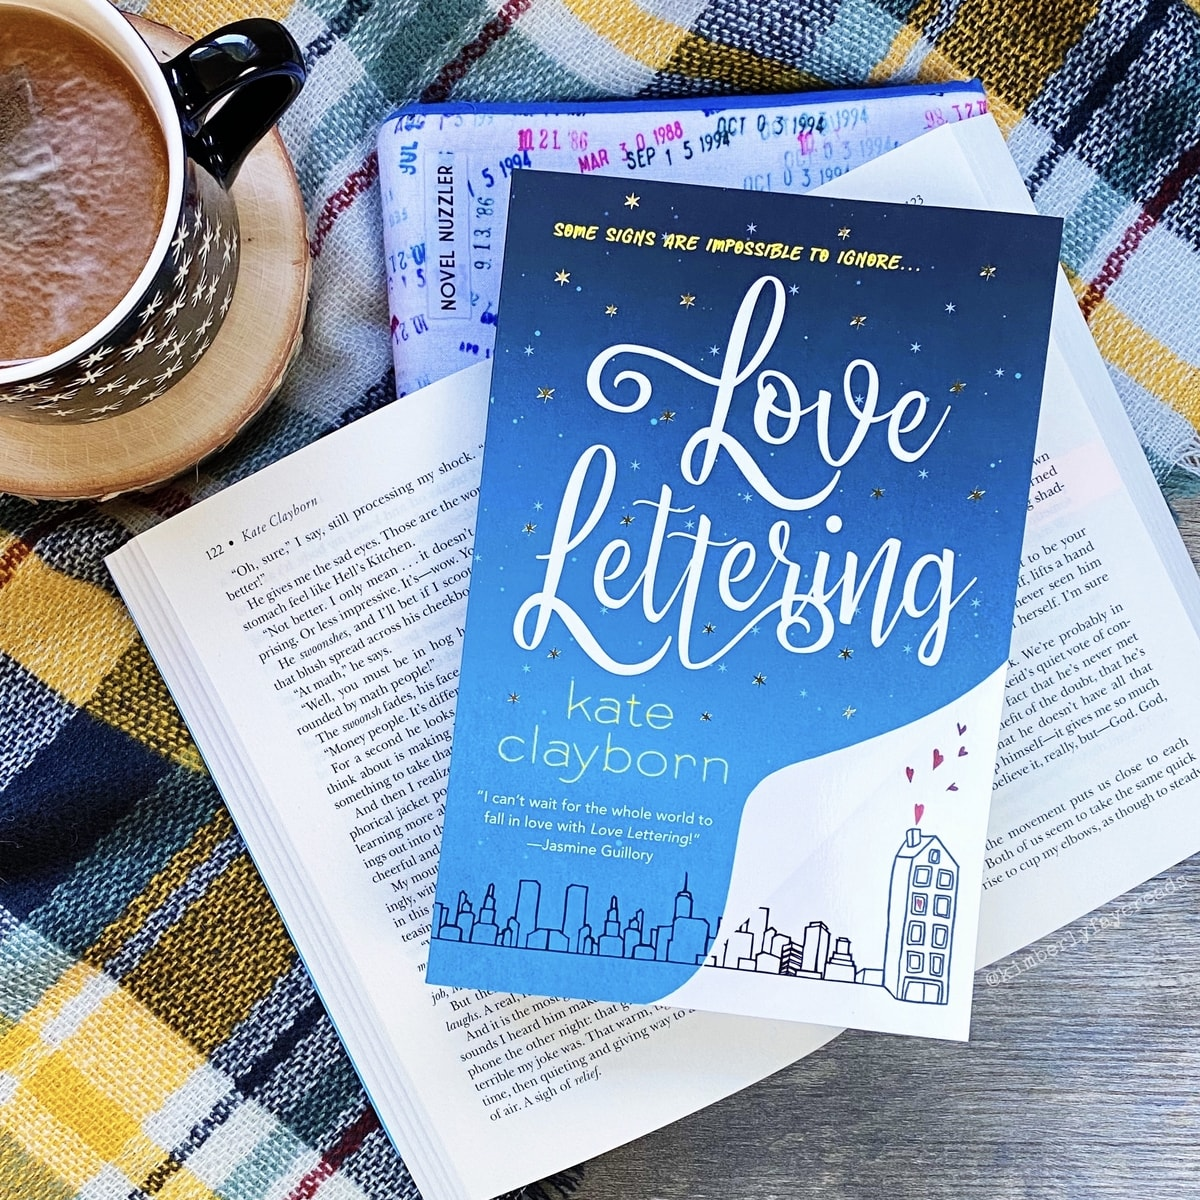 In Review: Love Lettering by Kate Clayborn